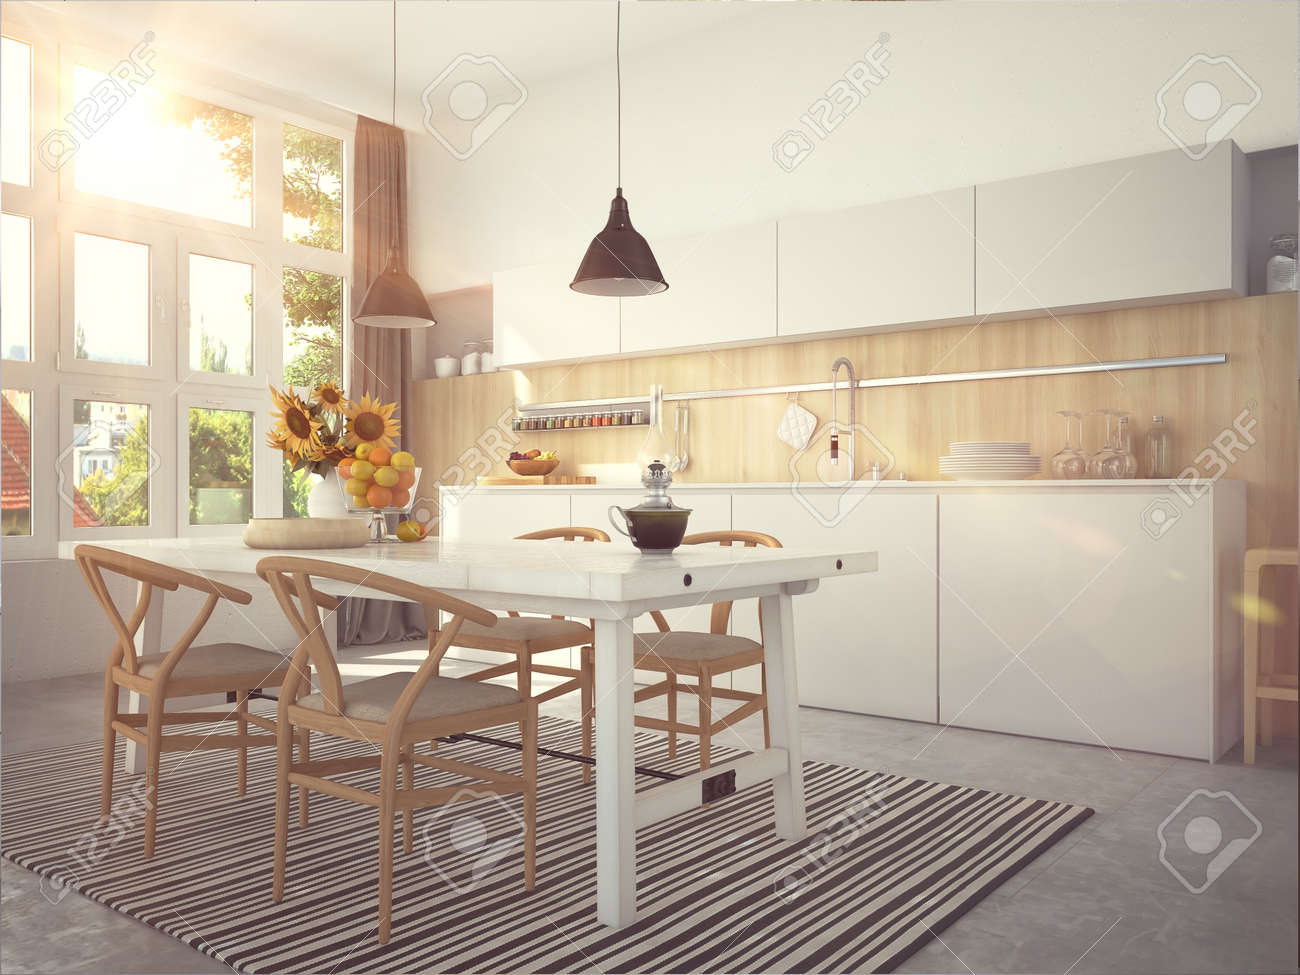 Kitchen and living room of loft apartment - 61606972